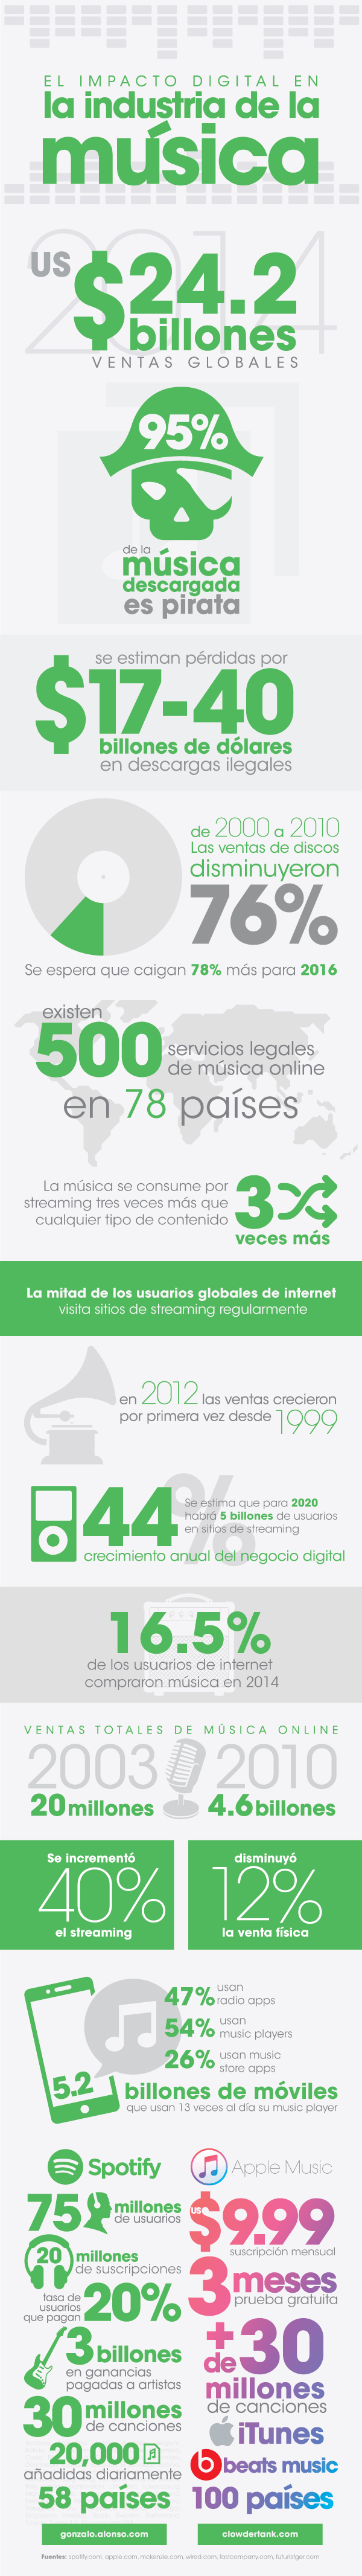 impacto-digital-musical-infografia